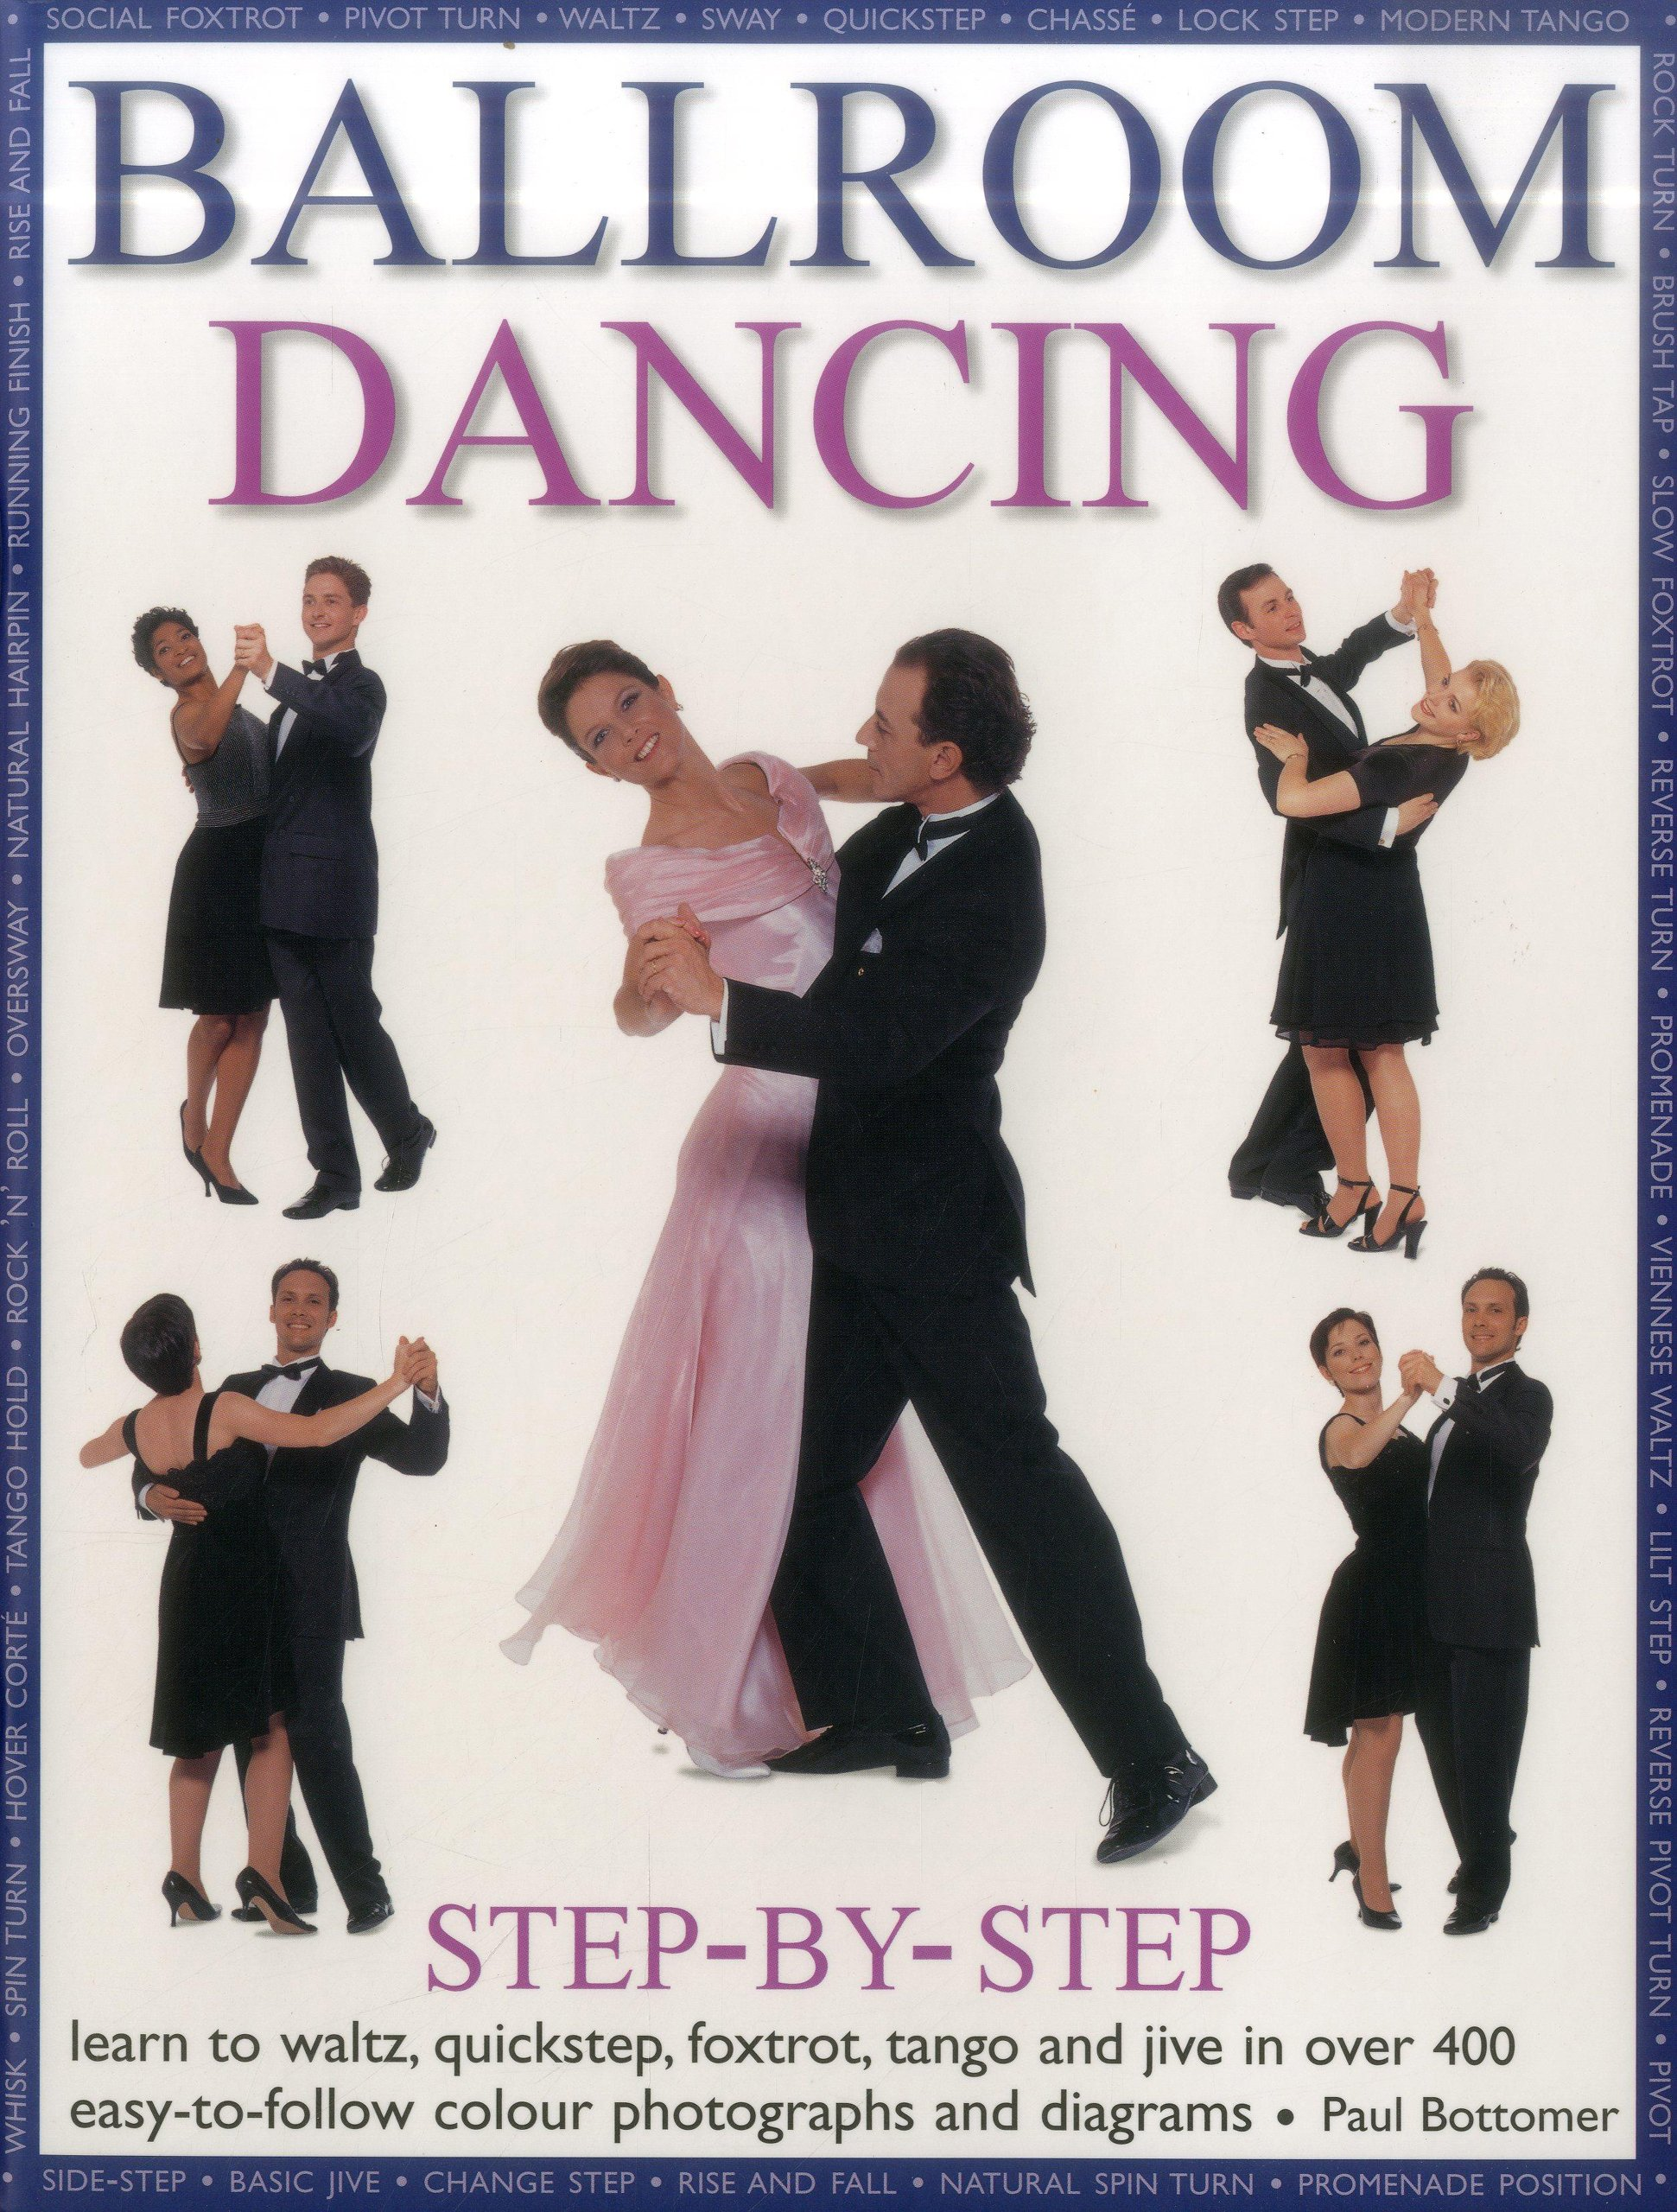 Ballroom Dancing Step By Learn To Waltz Quickstep Foxtrot Argentine Tango Steps Diagram Dance Figures And Jive In Over 400 Easy Follow Photographs Diagrams Paul Bottomer